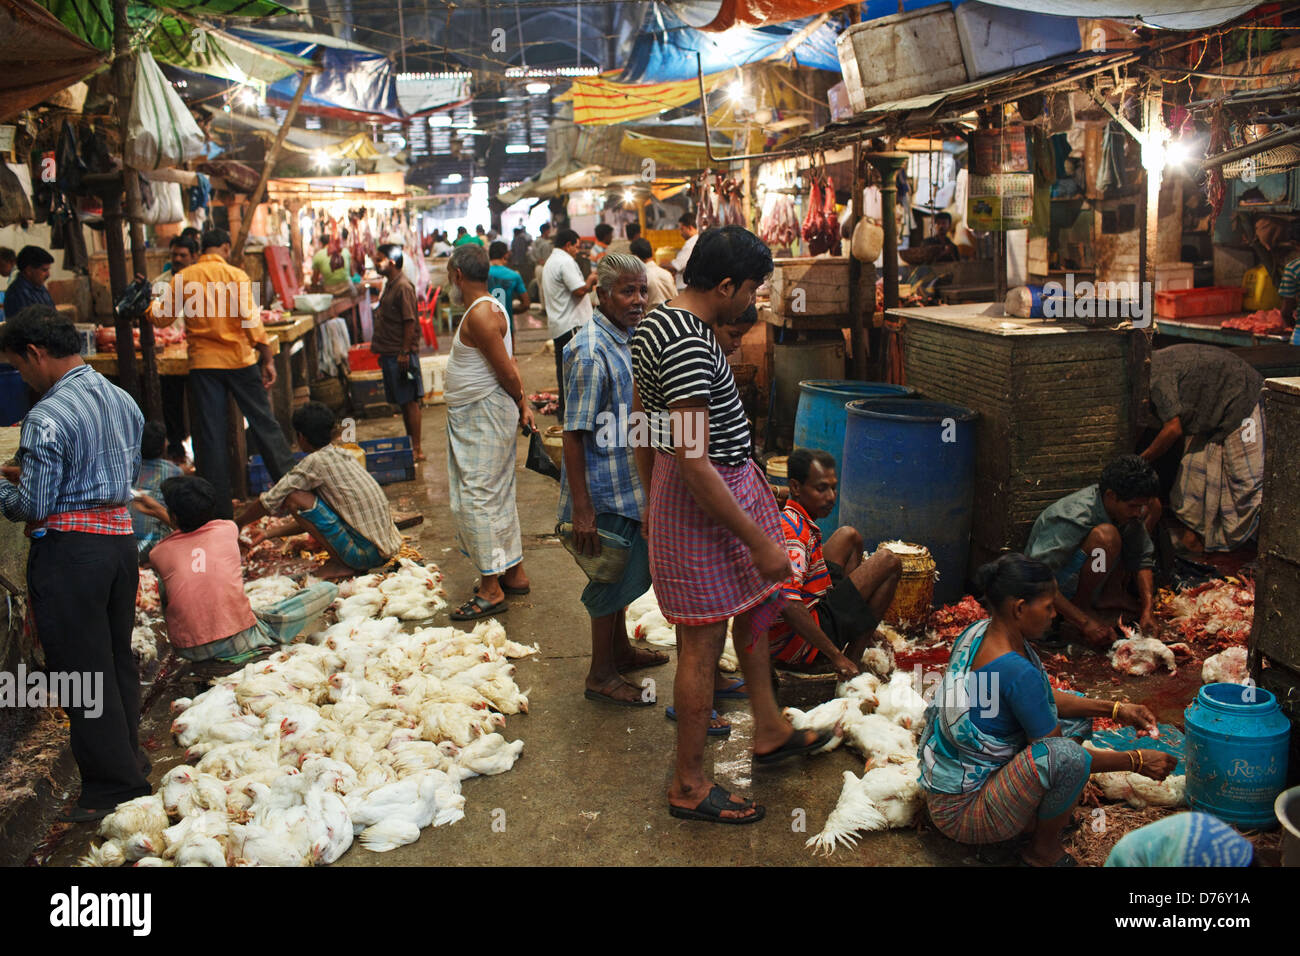 The meat section at New Market in Kolkata (Calcutta), India - Stock Image